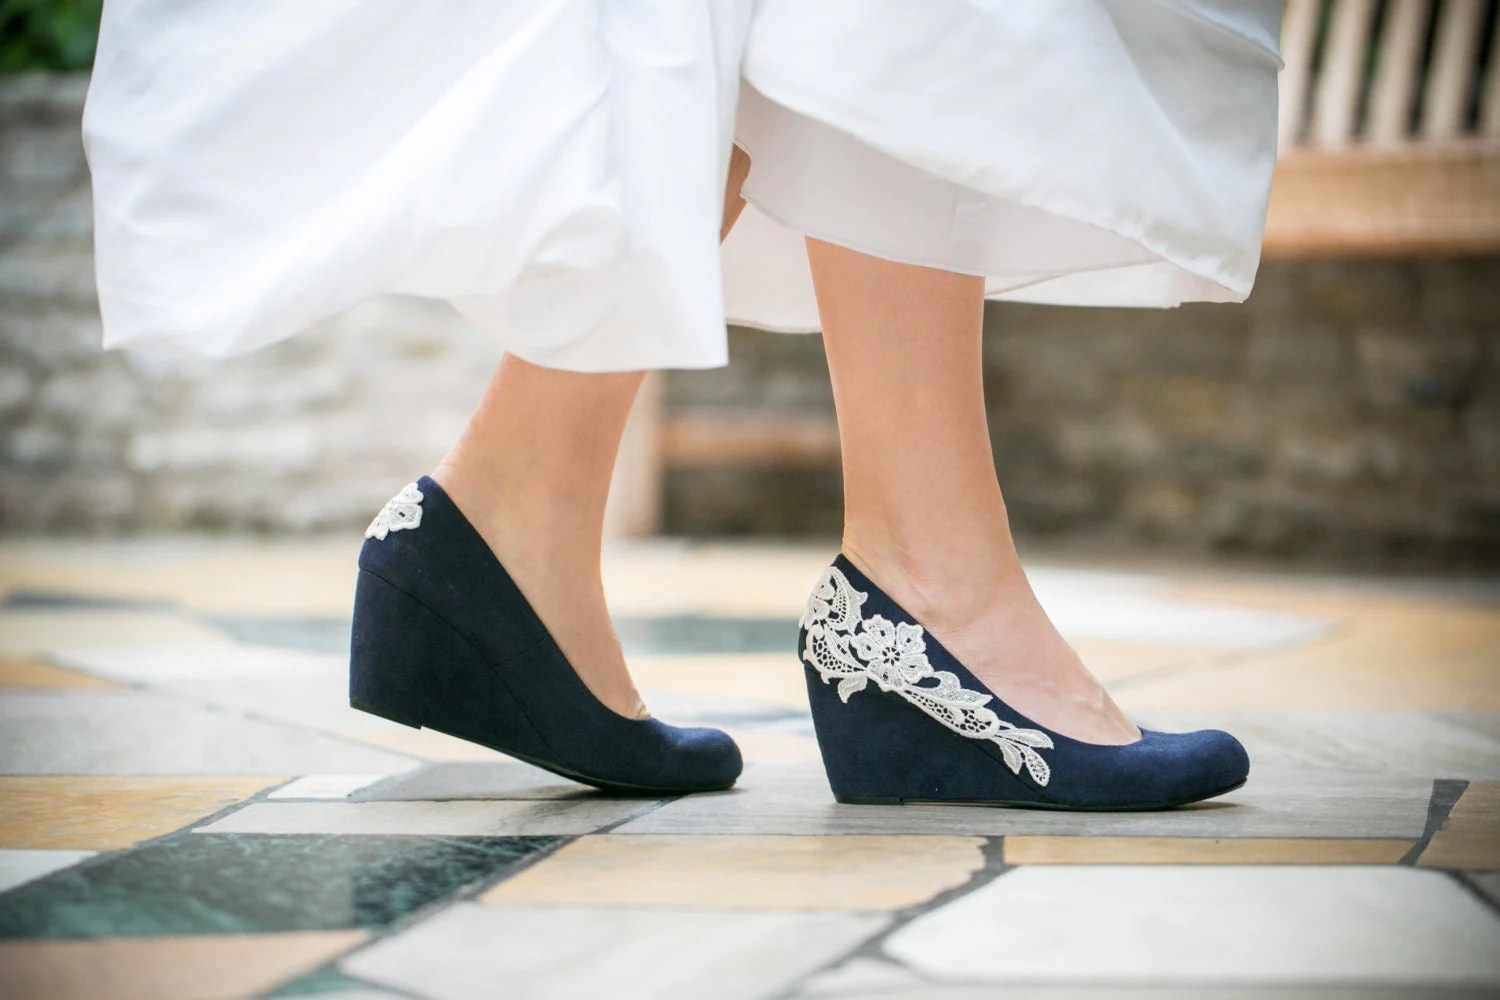 wedding wedges wedding shoes wedges Wedding Shoes Navy Blue Wedges Bridal Heel Navy Wedge Blue Wedges Something Blue Bridal Heels Bridal Heels Bridesmaid Wedges with Ivory Lace